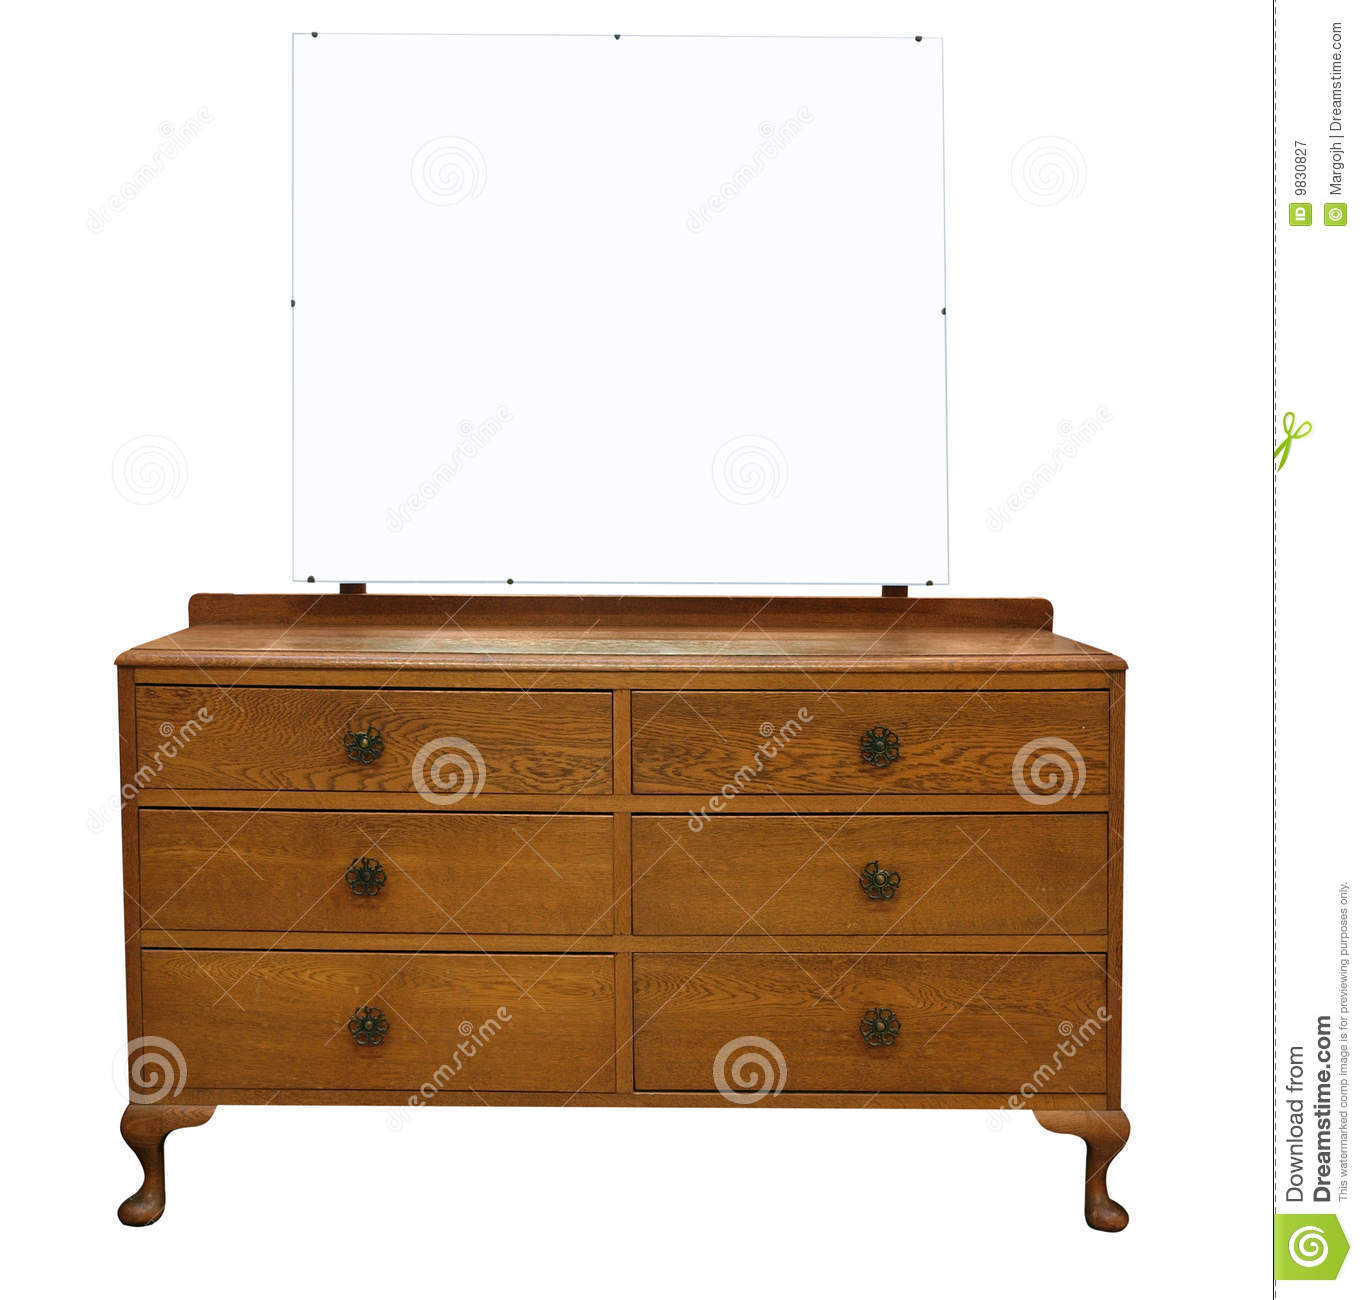 Antique dressing table with mirror - Antique Dressing Table With Mirror Royalty Free Stock Photography